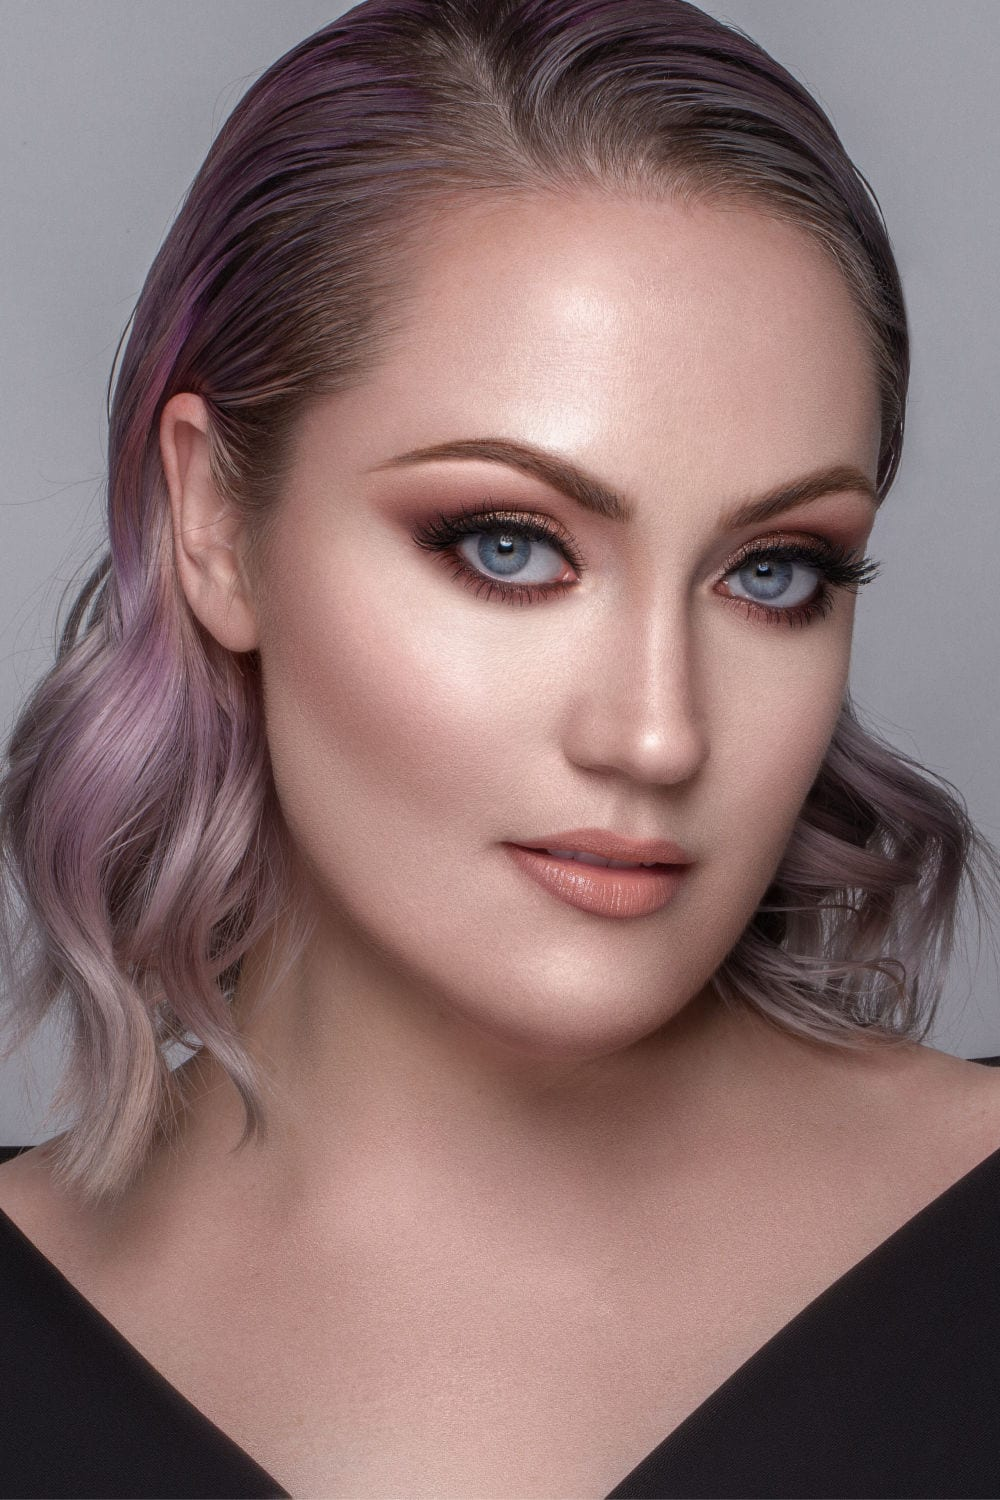 Soft Glam Look created for Mario's MasterCourse